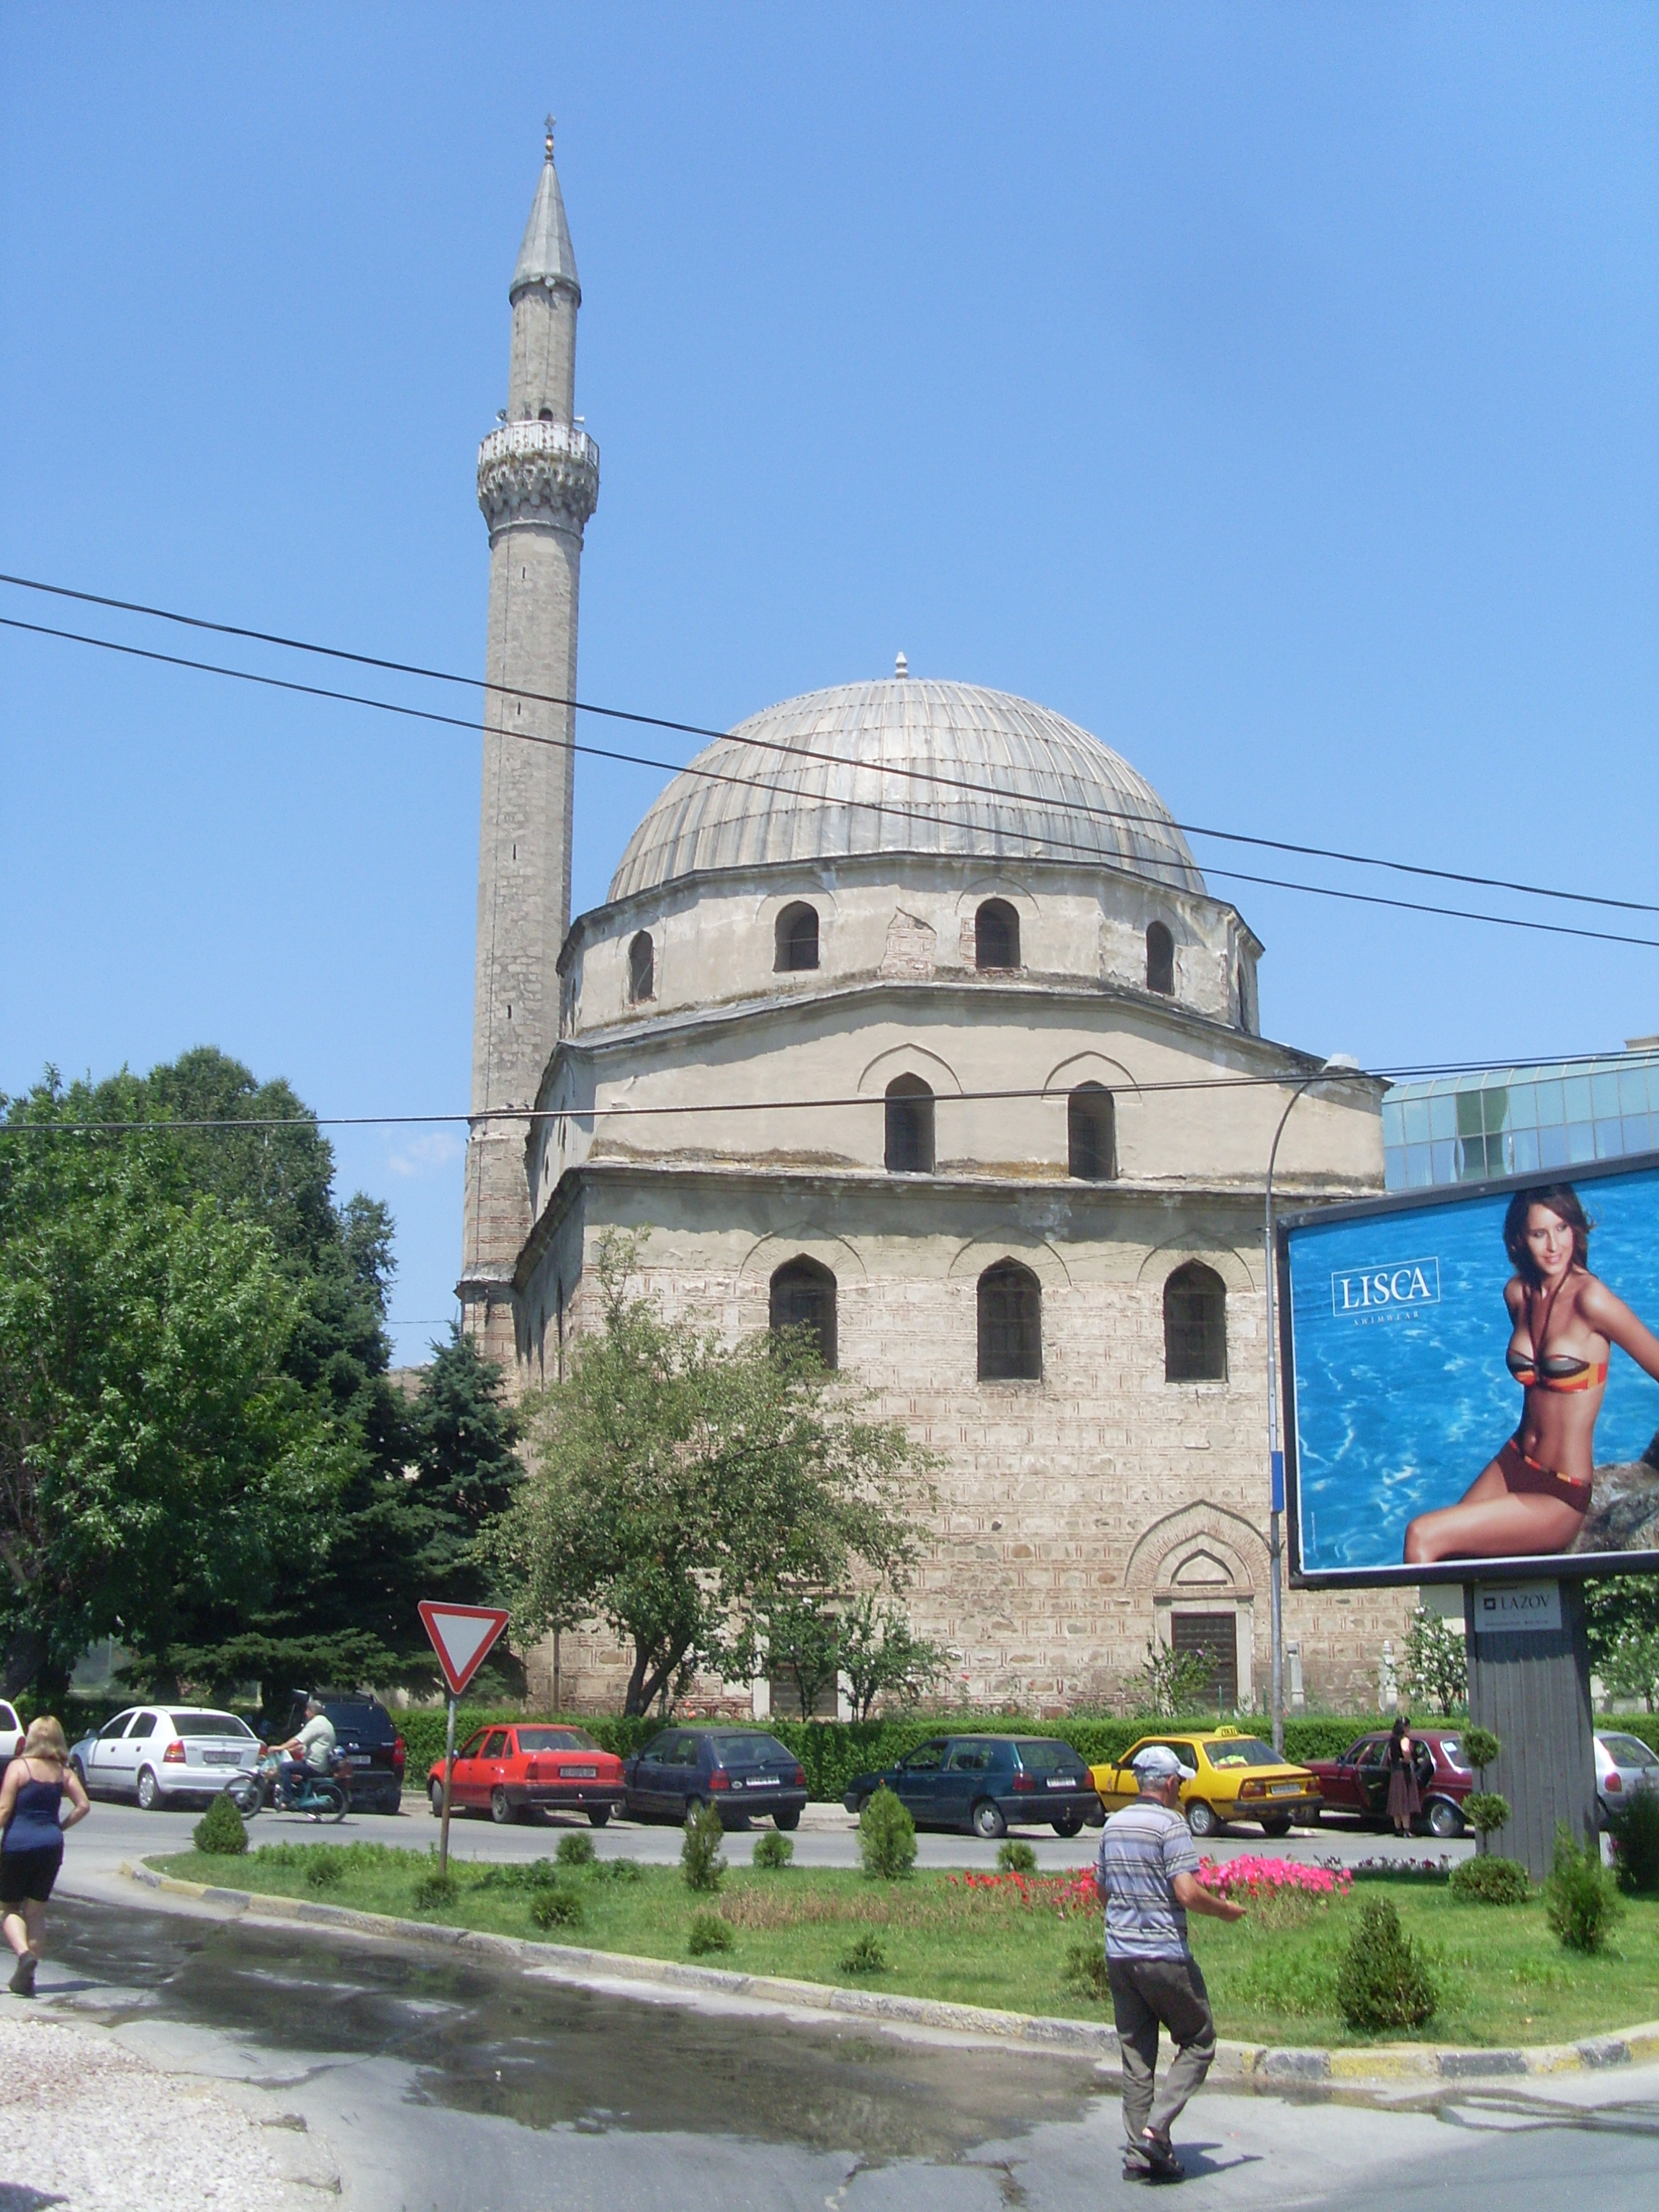 File:Yeni Mosque and poster, Bitola, Republic of Macedonia ...